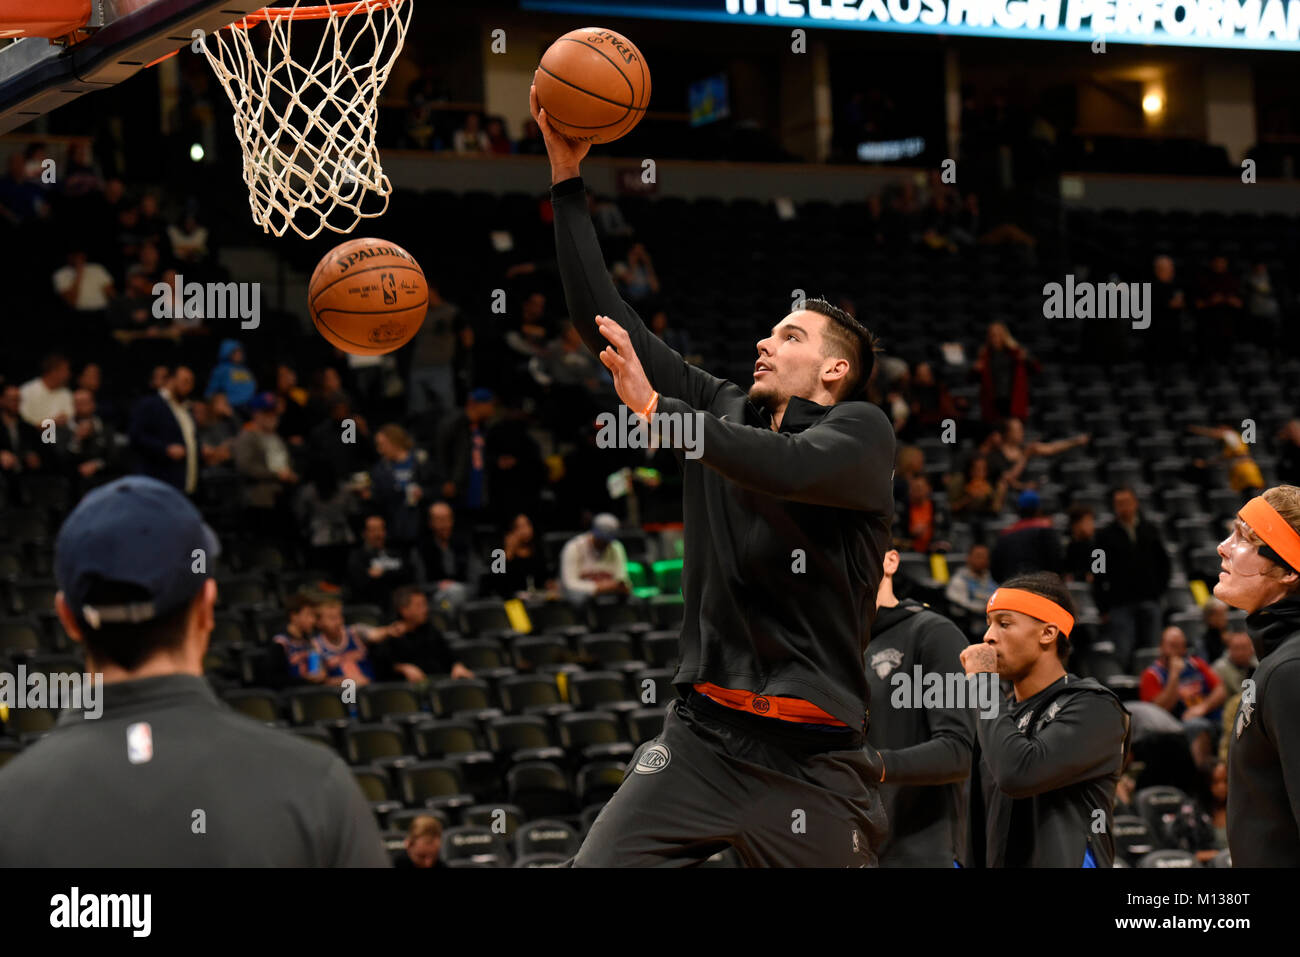 Denver, USA. 25th Jan, 2018. New York Knicks center Willy Hernangomez warms up prior to the game against the Denver Stock Photo